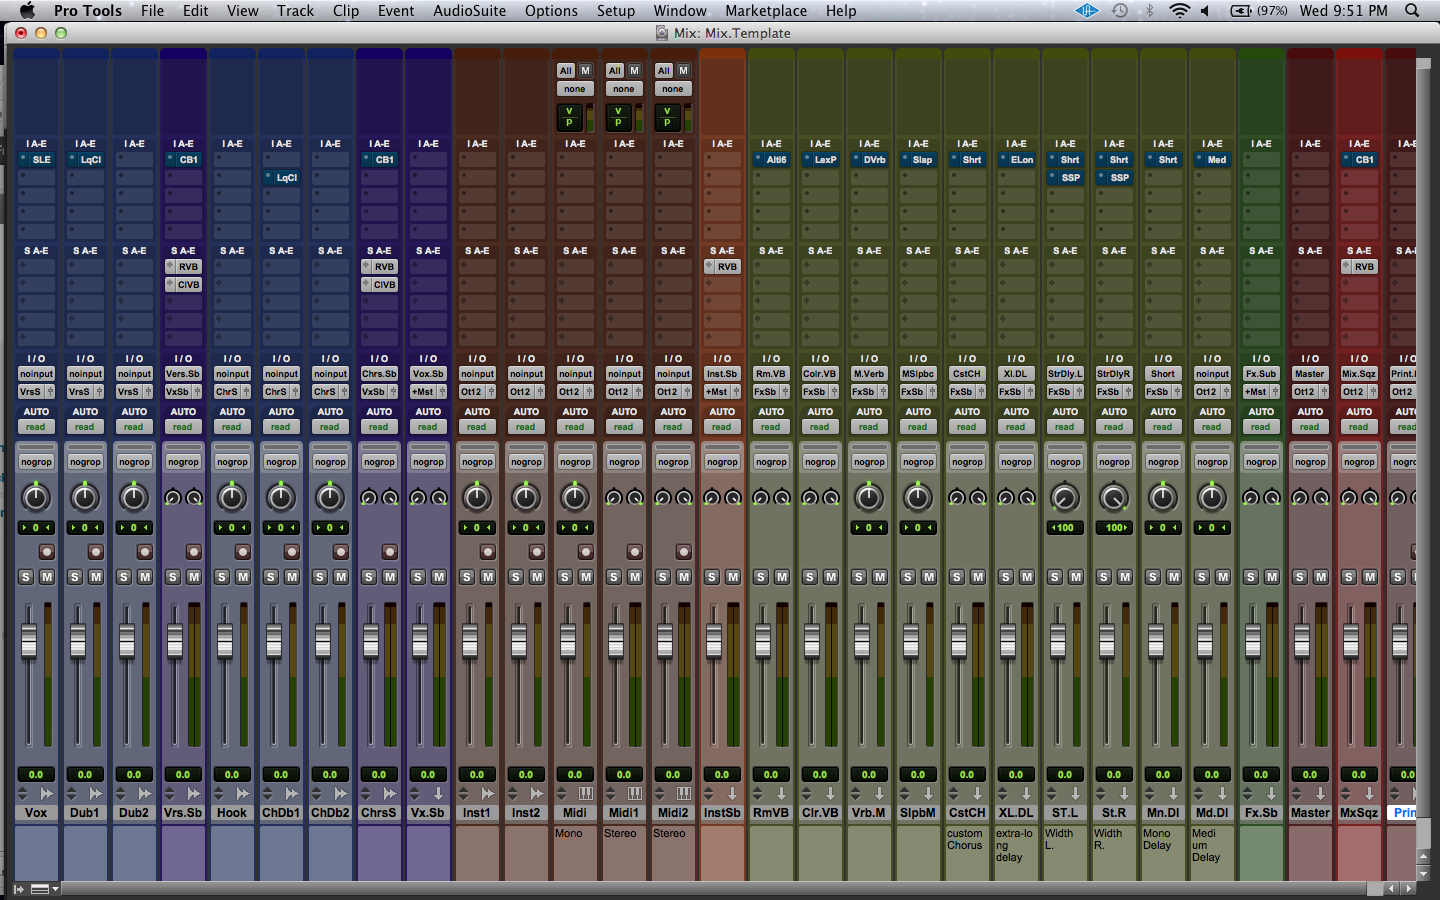 pro tools template